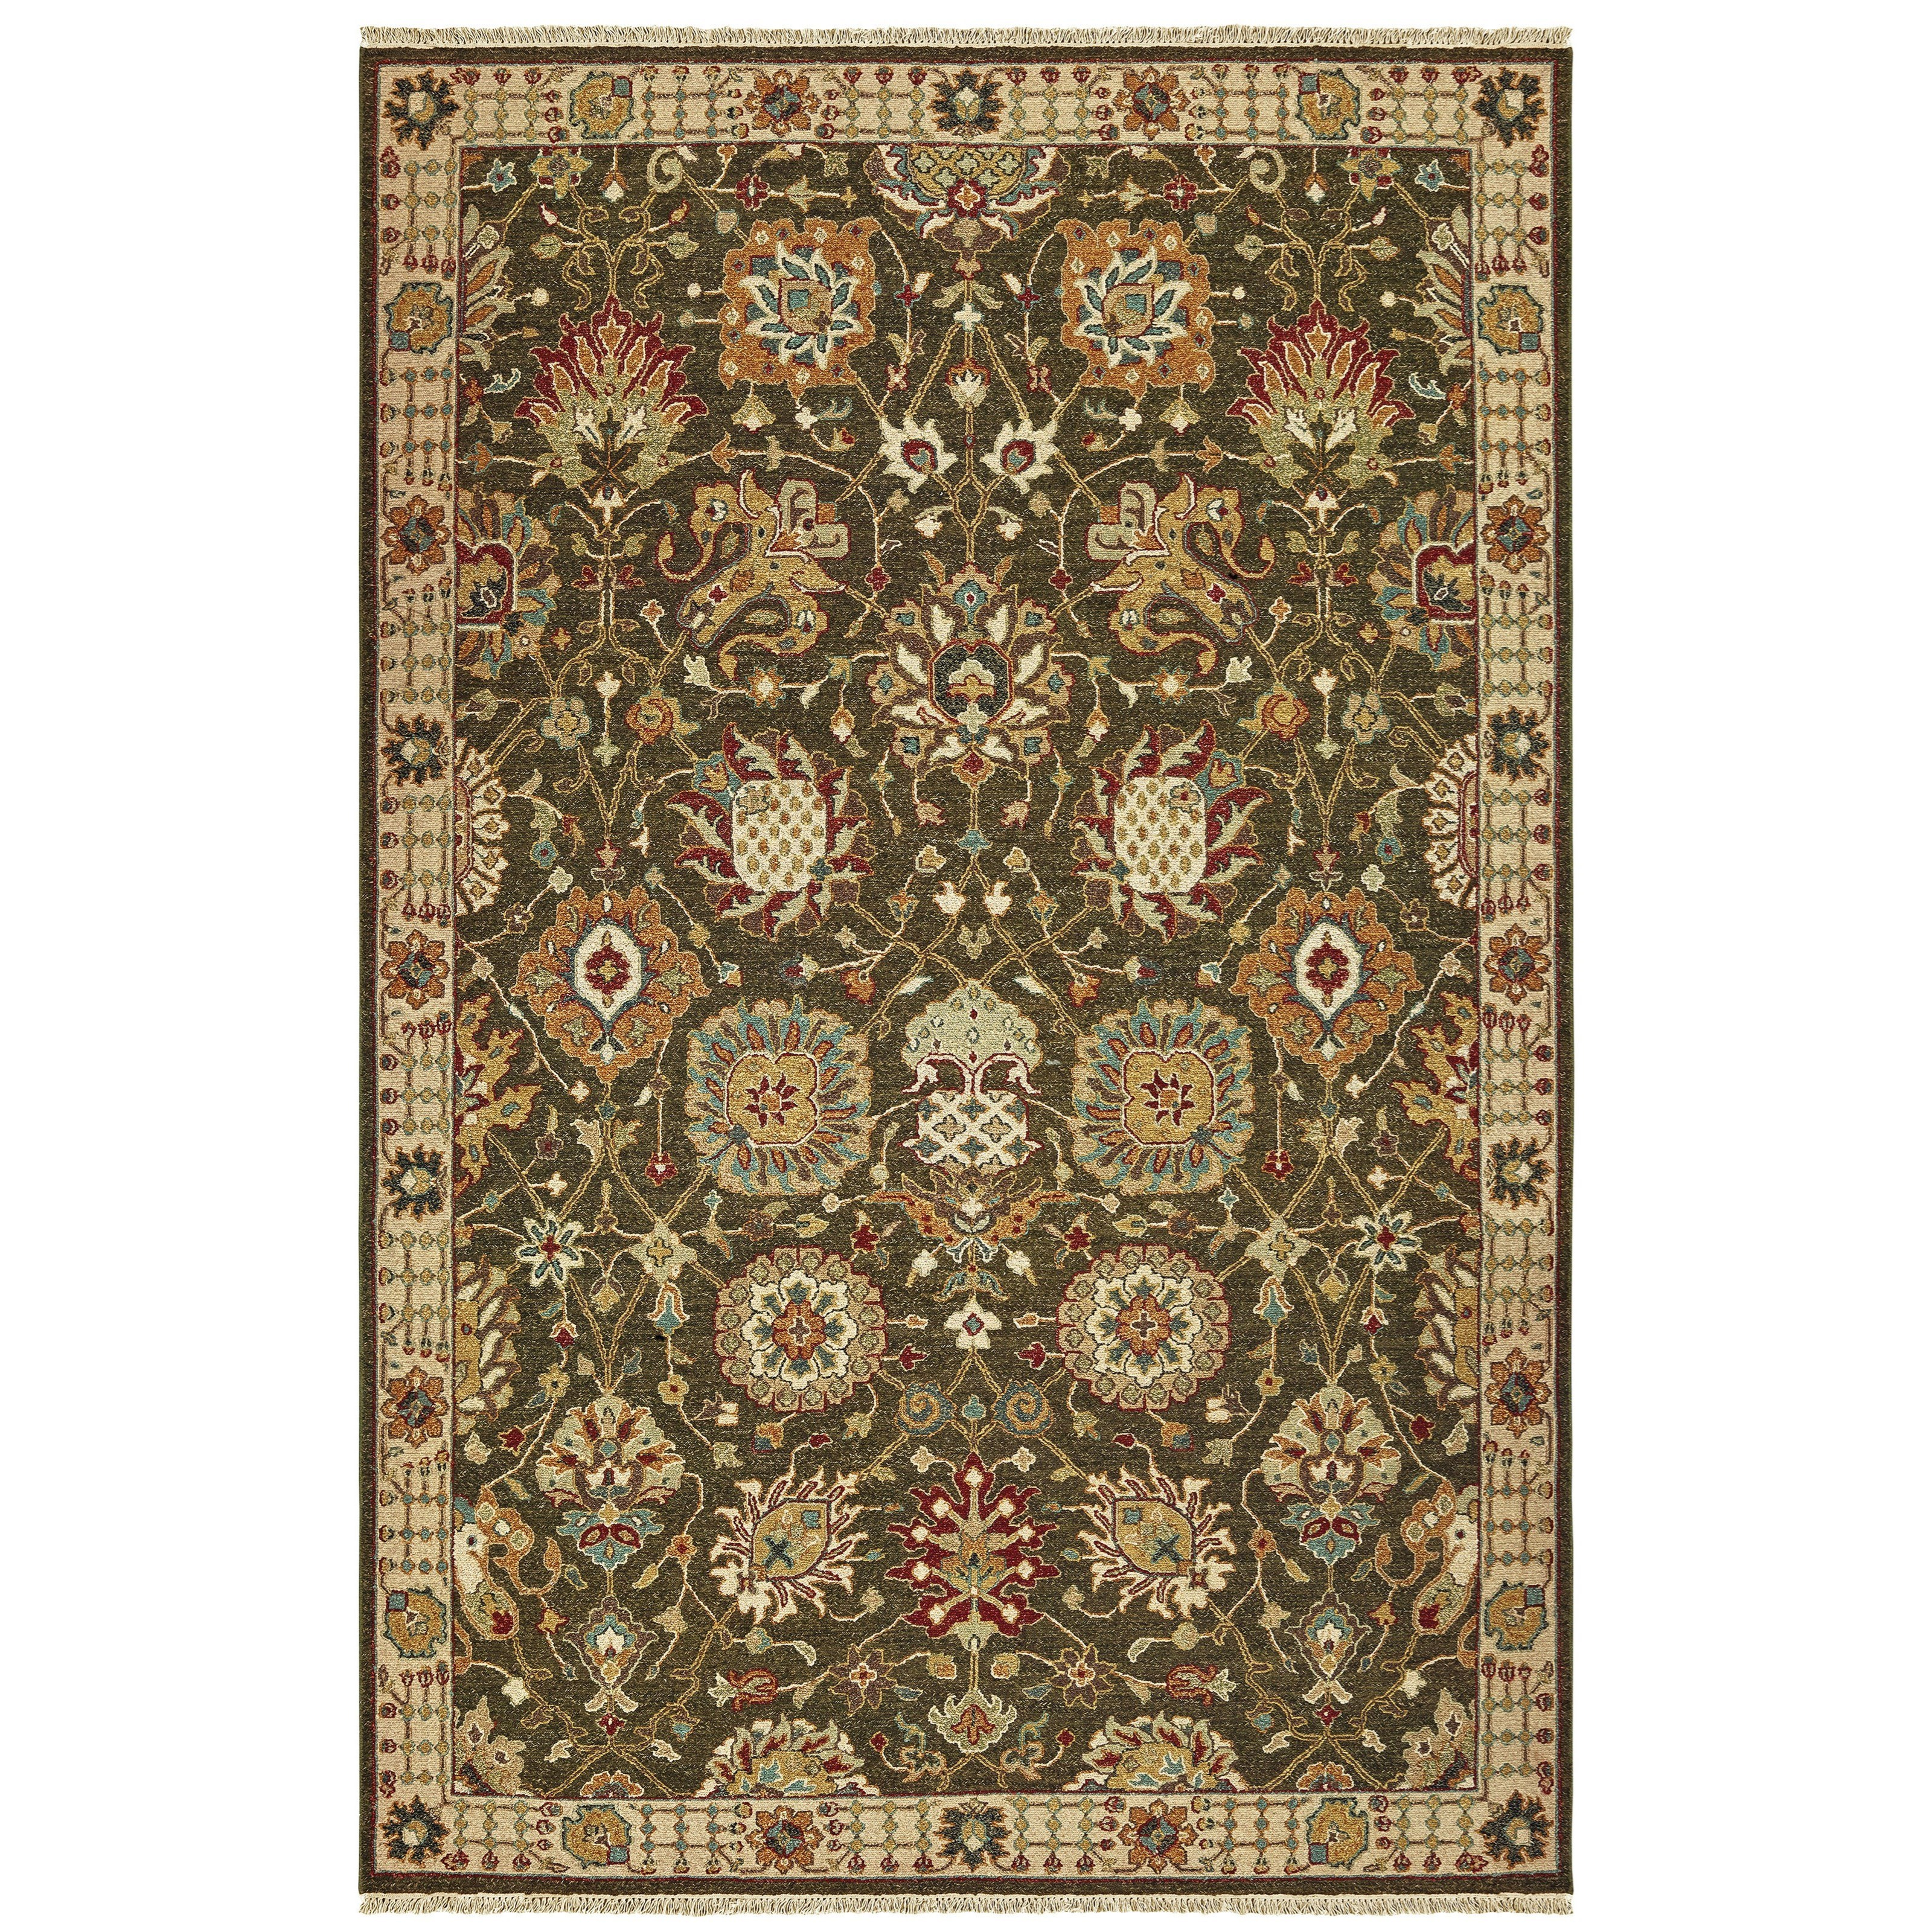 Angora 6' X  9' Rectangle Rug by Oriental Weavers at Steger's Furniture